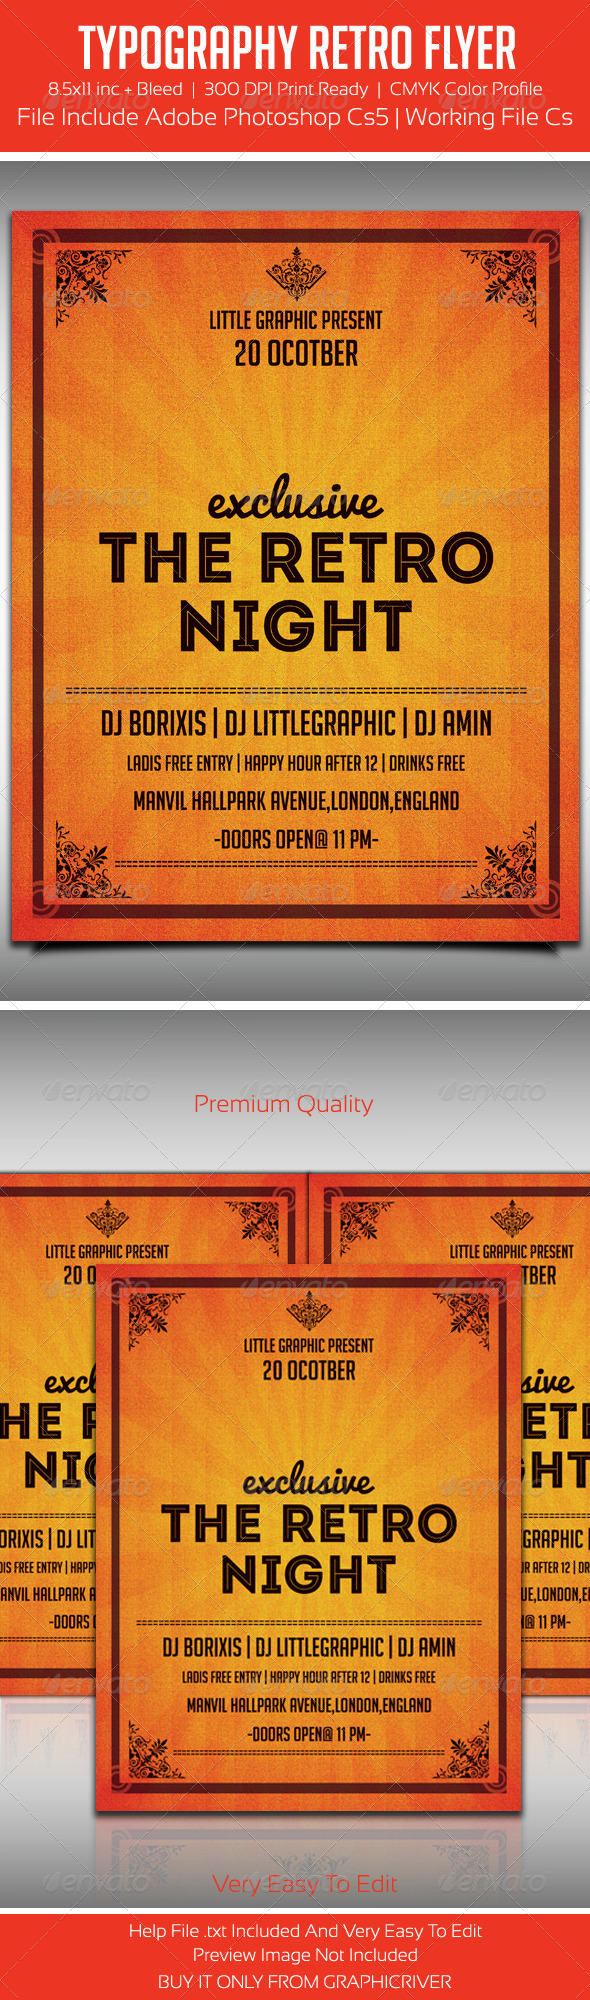 Typography Retro Party Flyer Template